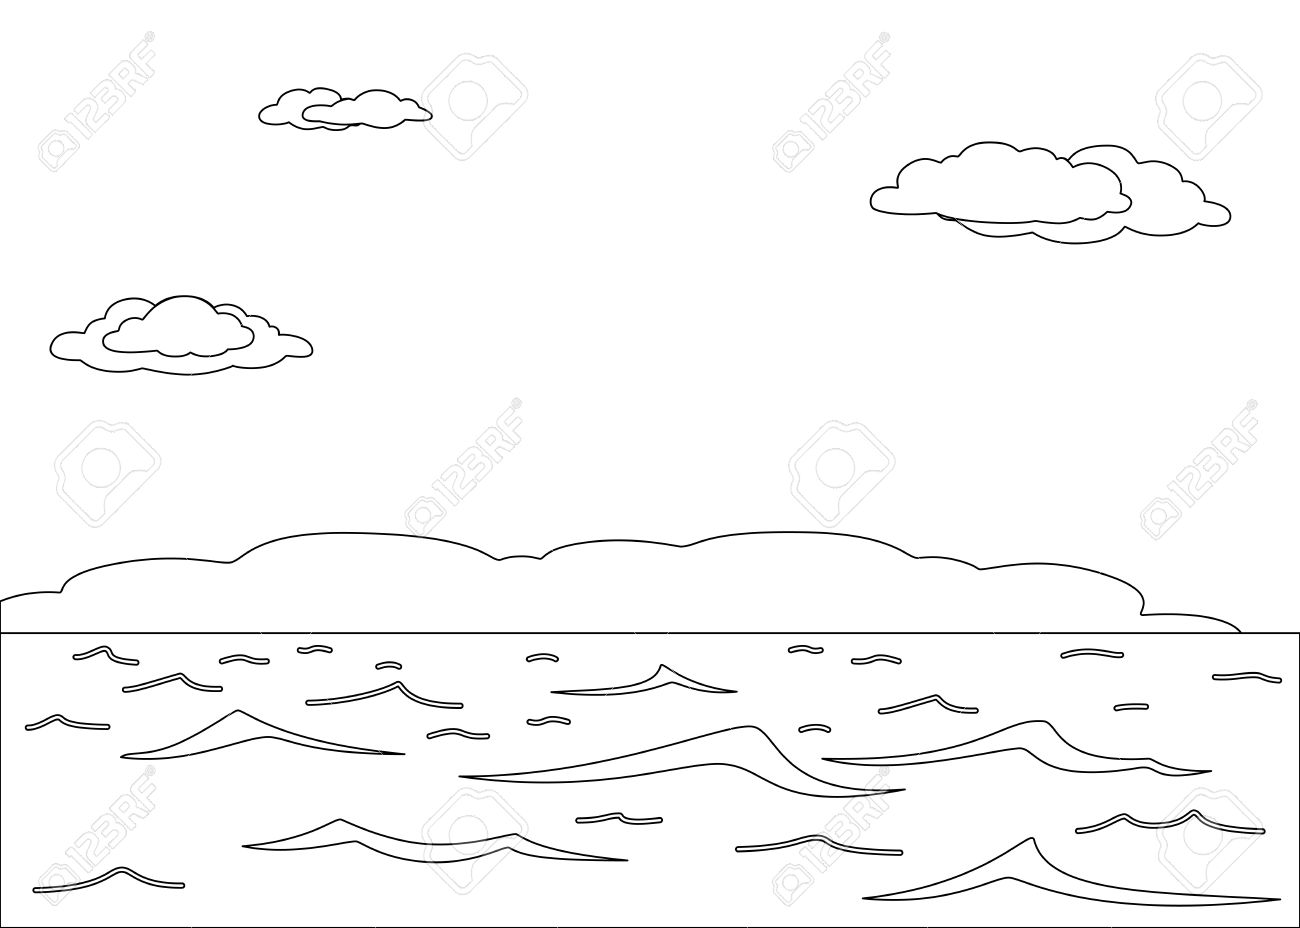 Sky and sea clipart.